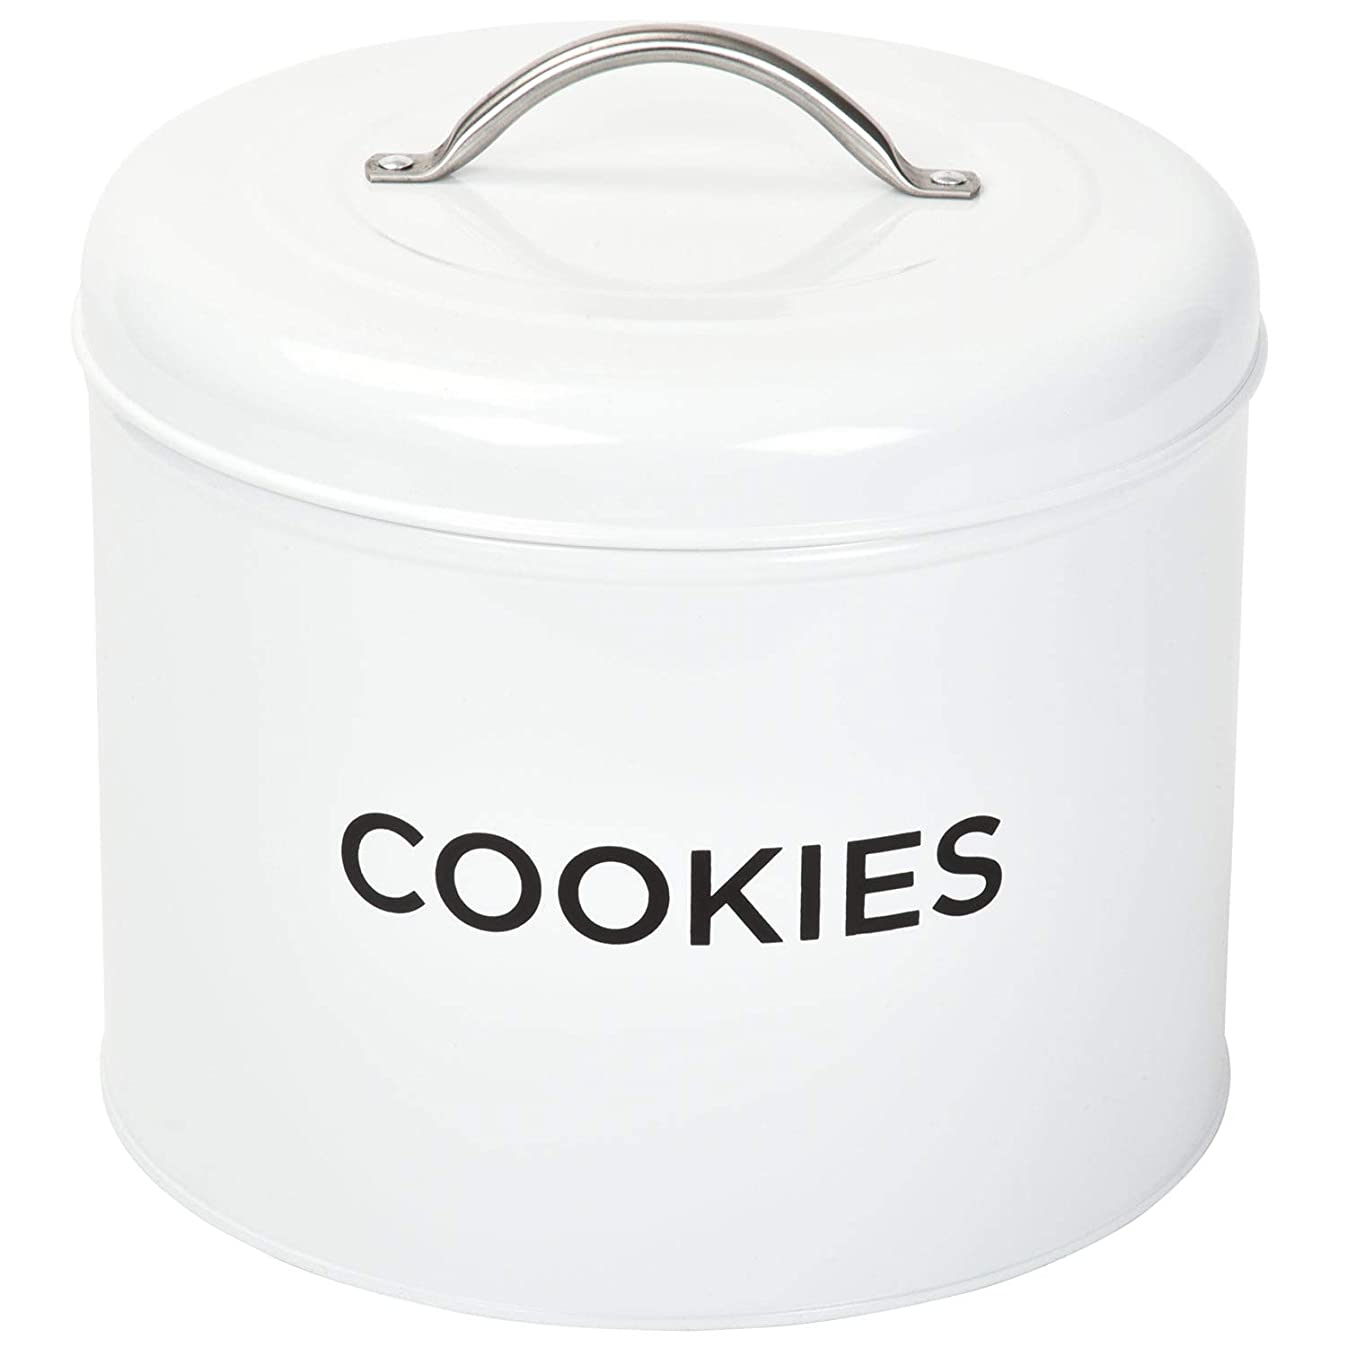 TIN COOKIE JAR By Spigo Great for Storing All Your Cookies and Delicious Treats, Durable Construction And Stylish Retro Design, 1.56 Gallons (White)